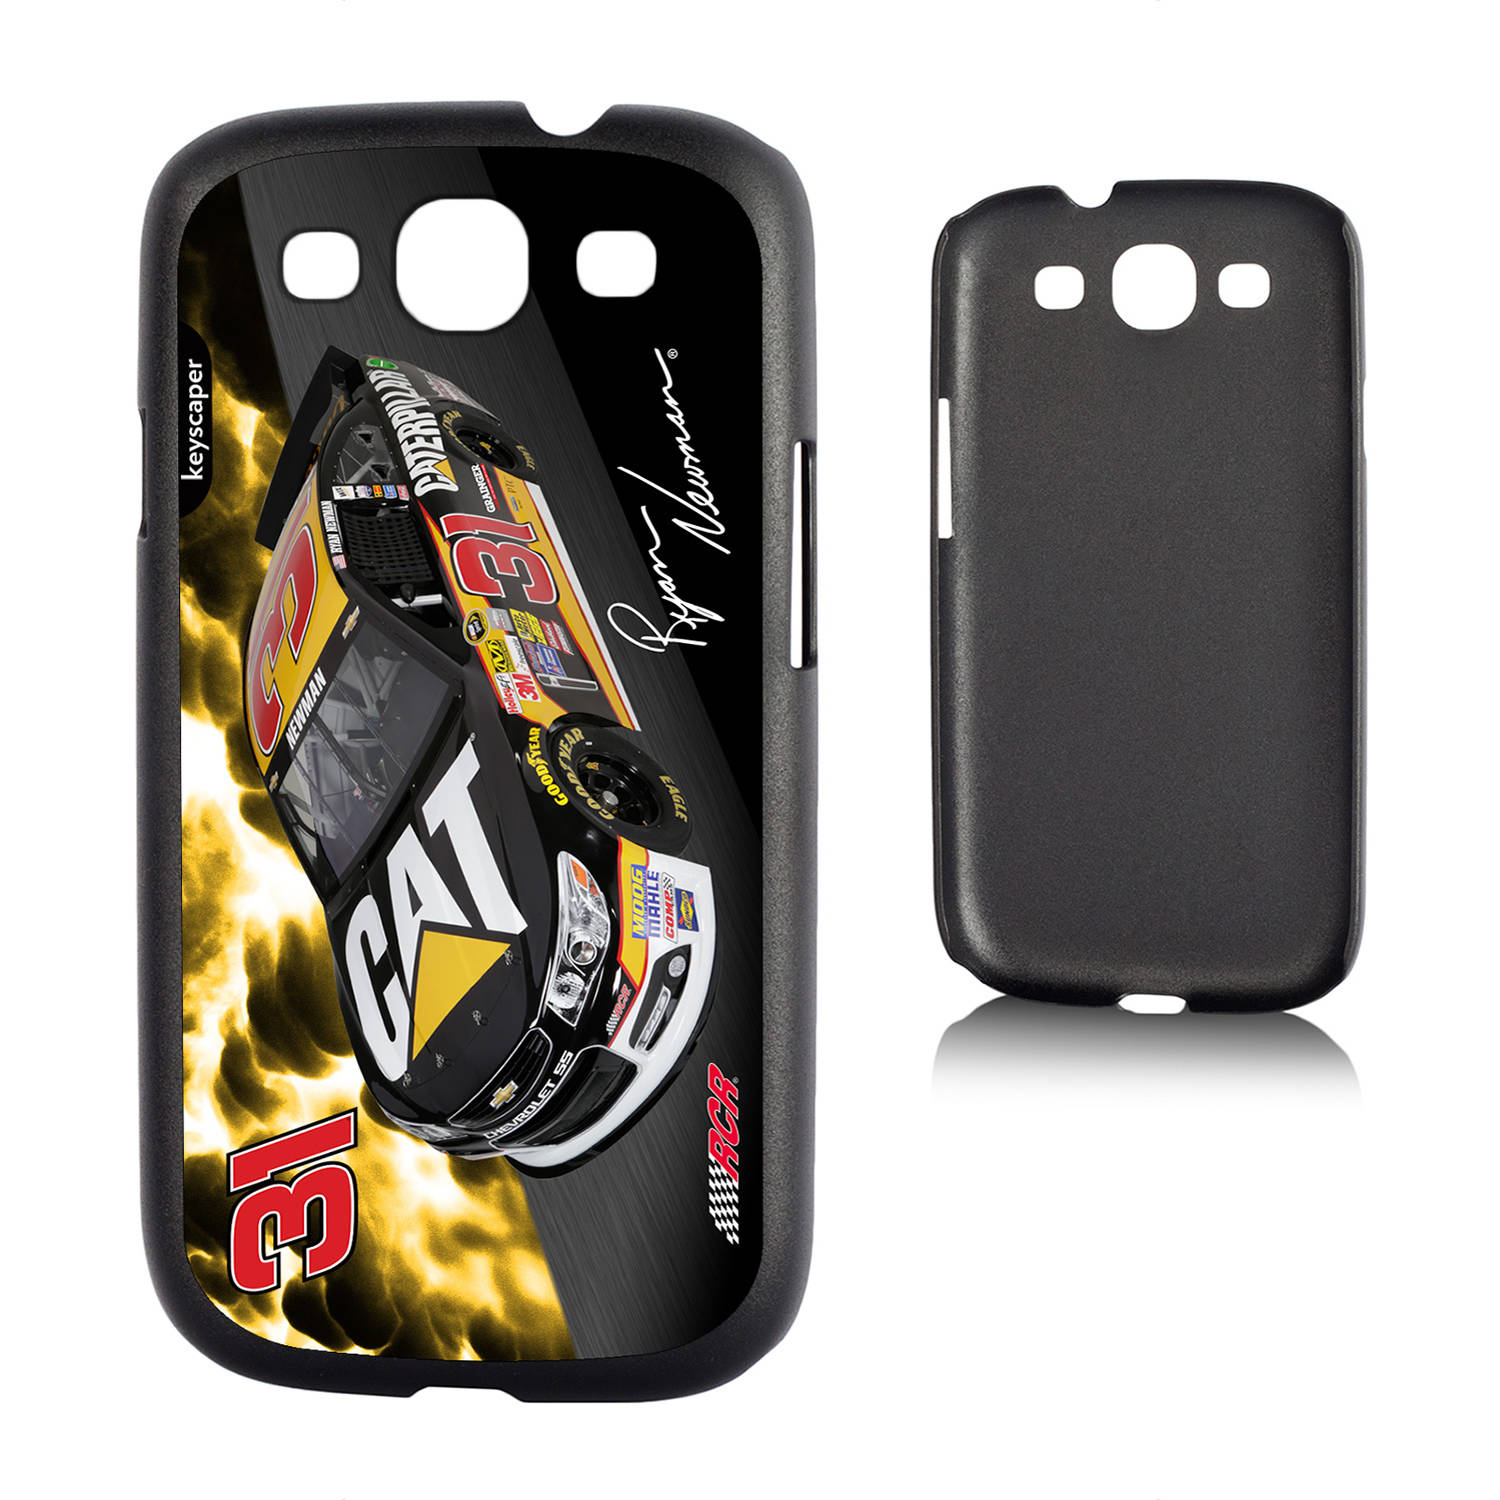 Ryan Newman #31 Galaxy S3 Slim Case